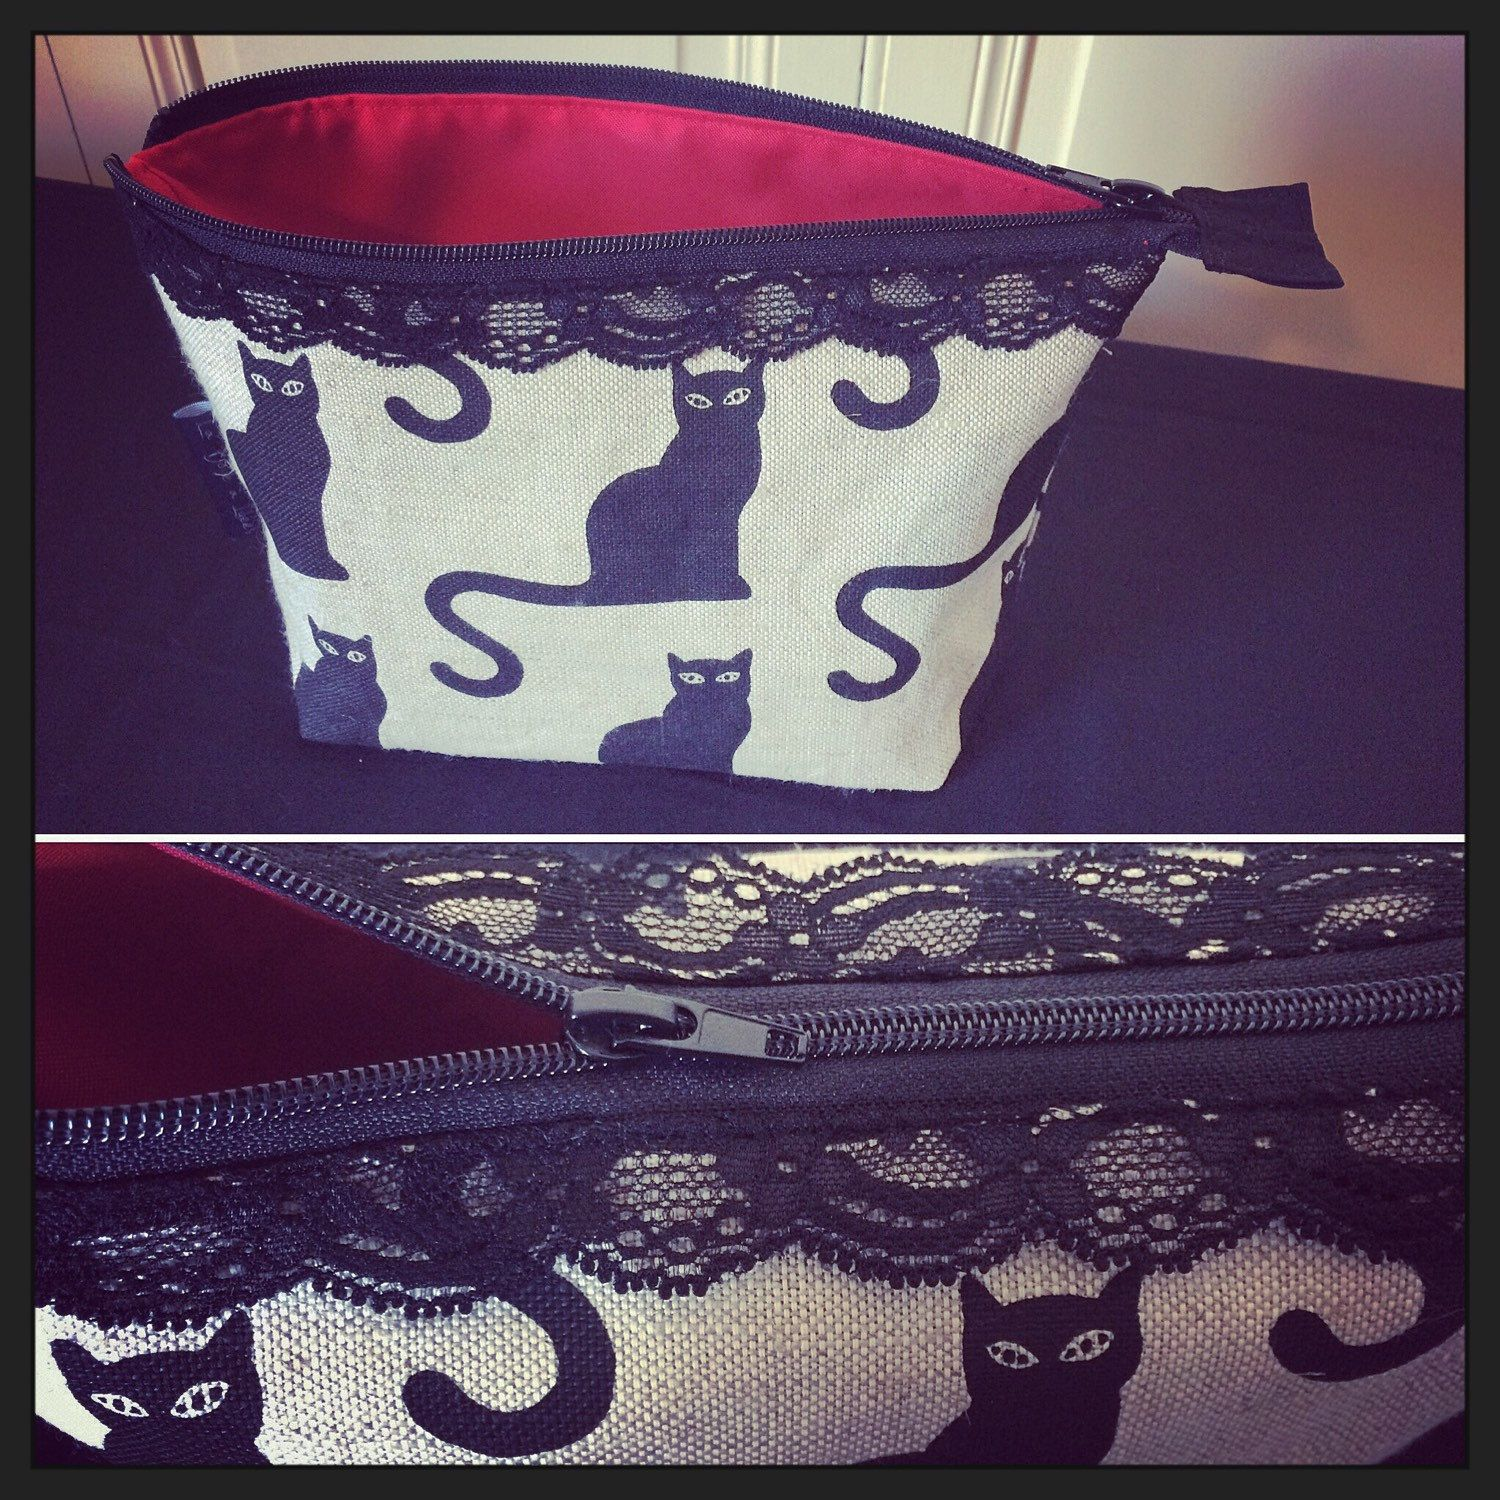 Wash bag / Toiletry bag / Cosmetic bag by TextileReversible on Etsy